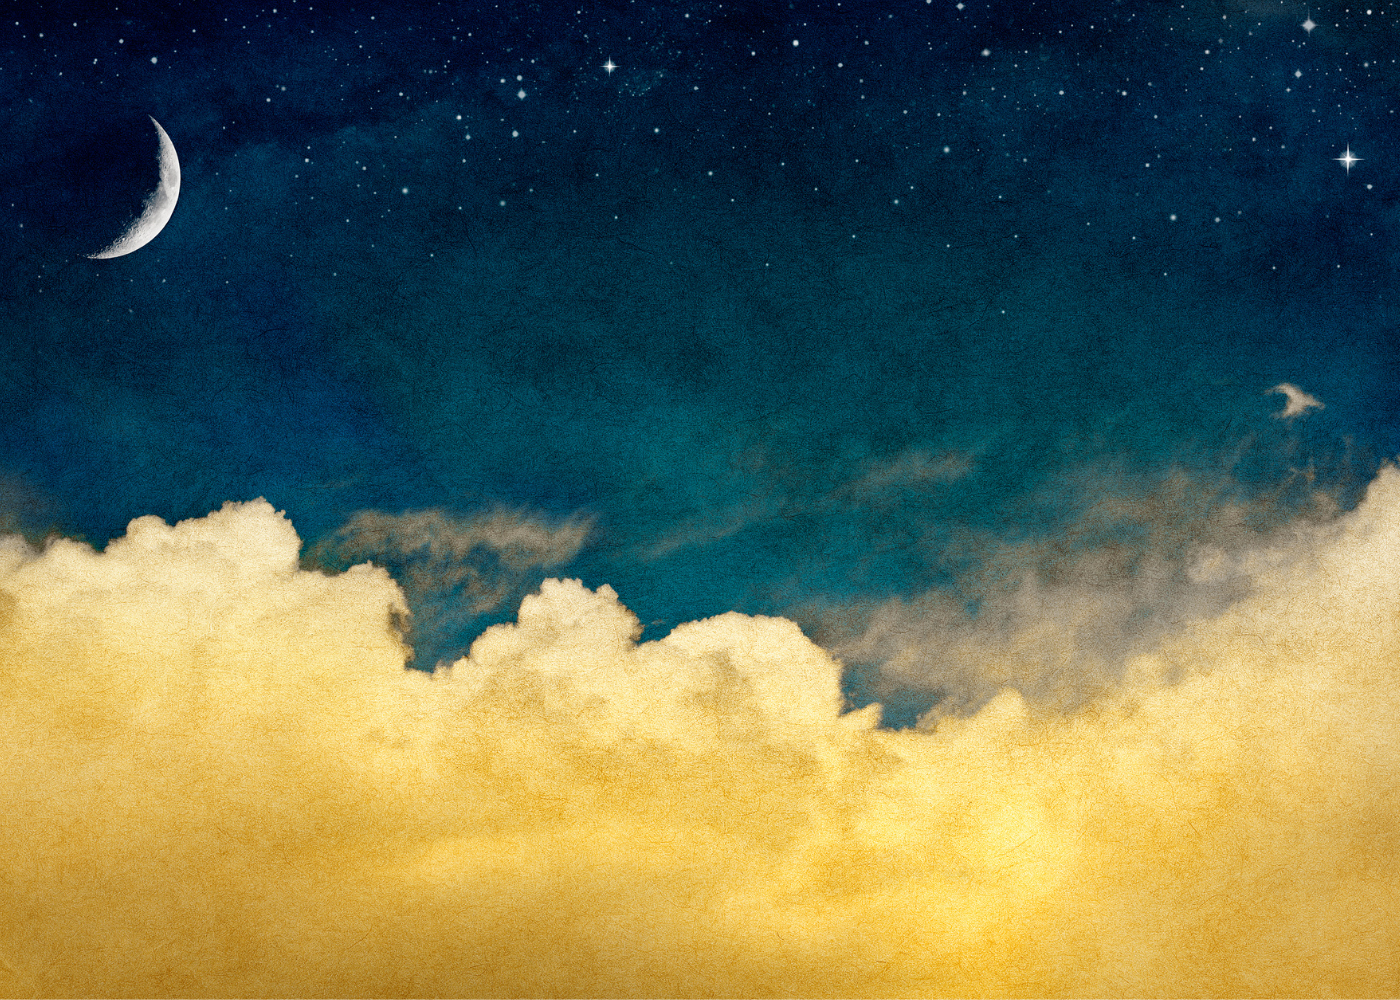 Crescent moon in night sky above cloud